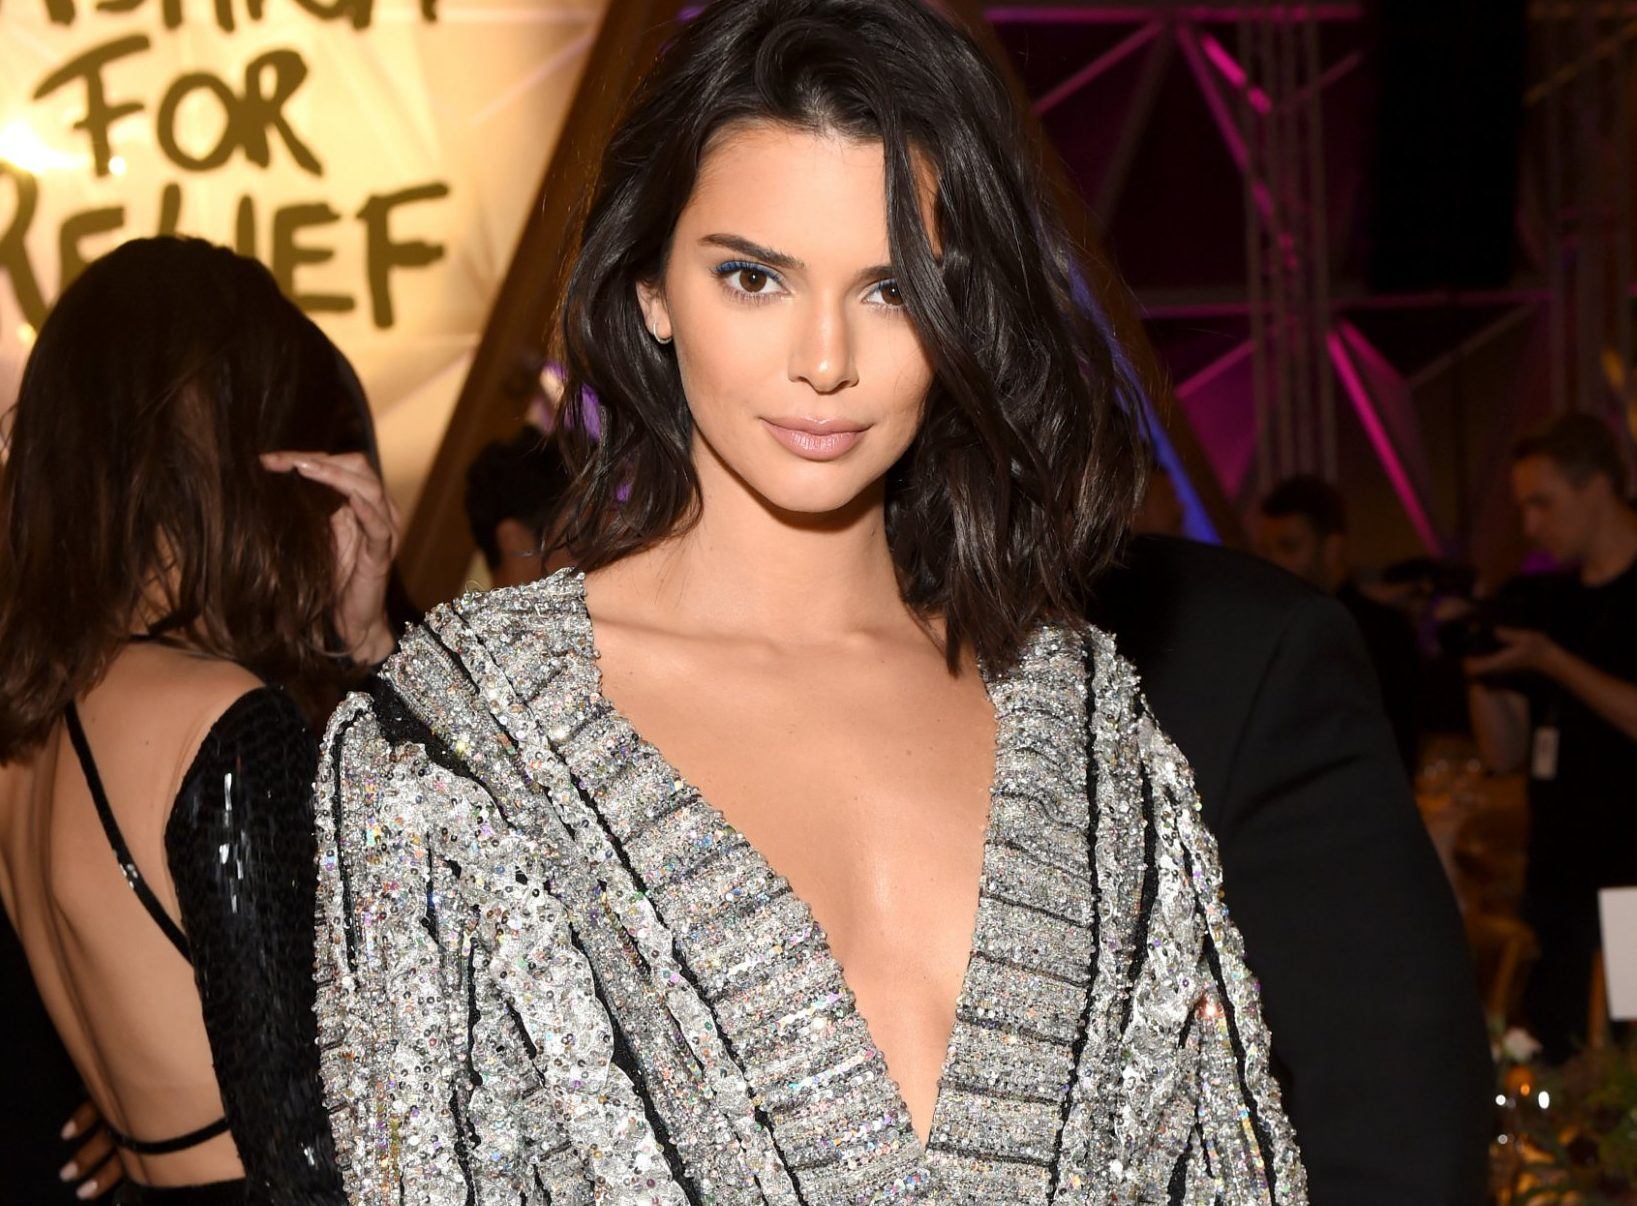 Kendall Jenner stepped away from the catwalk because she was on the 'verge of a mental breakdown'